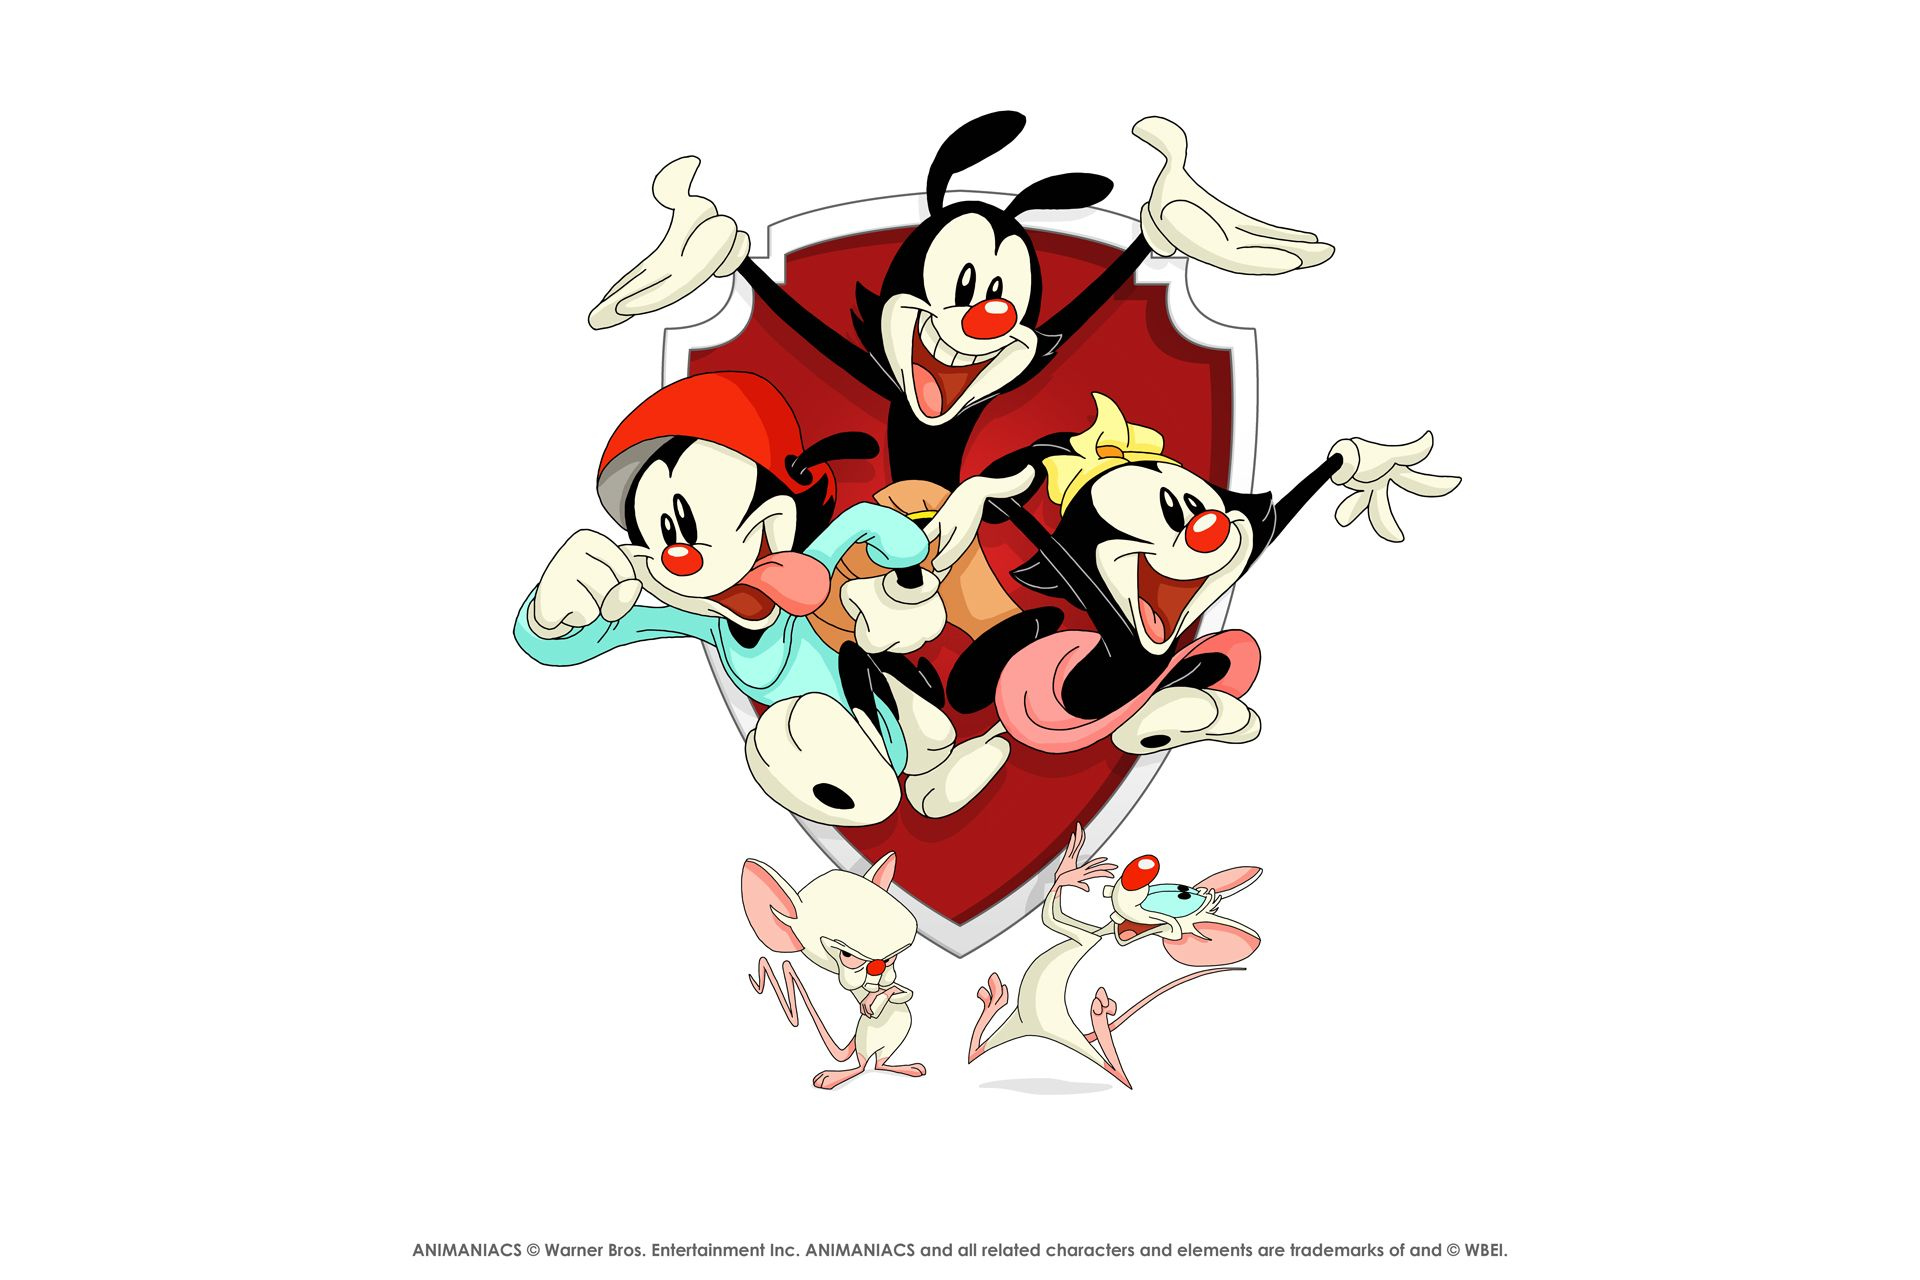 Animaniacs gets 2 new seasons set to premiere on hulu collider - Animaniacs pictures ...